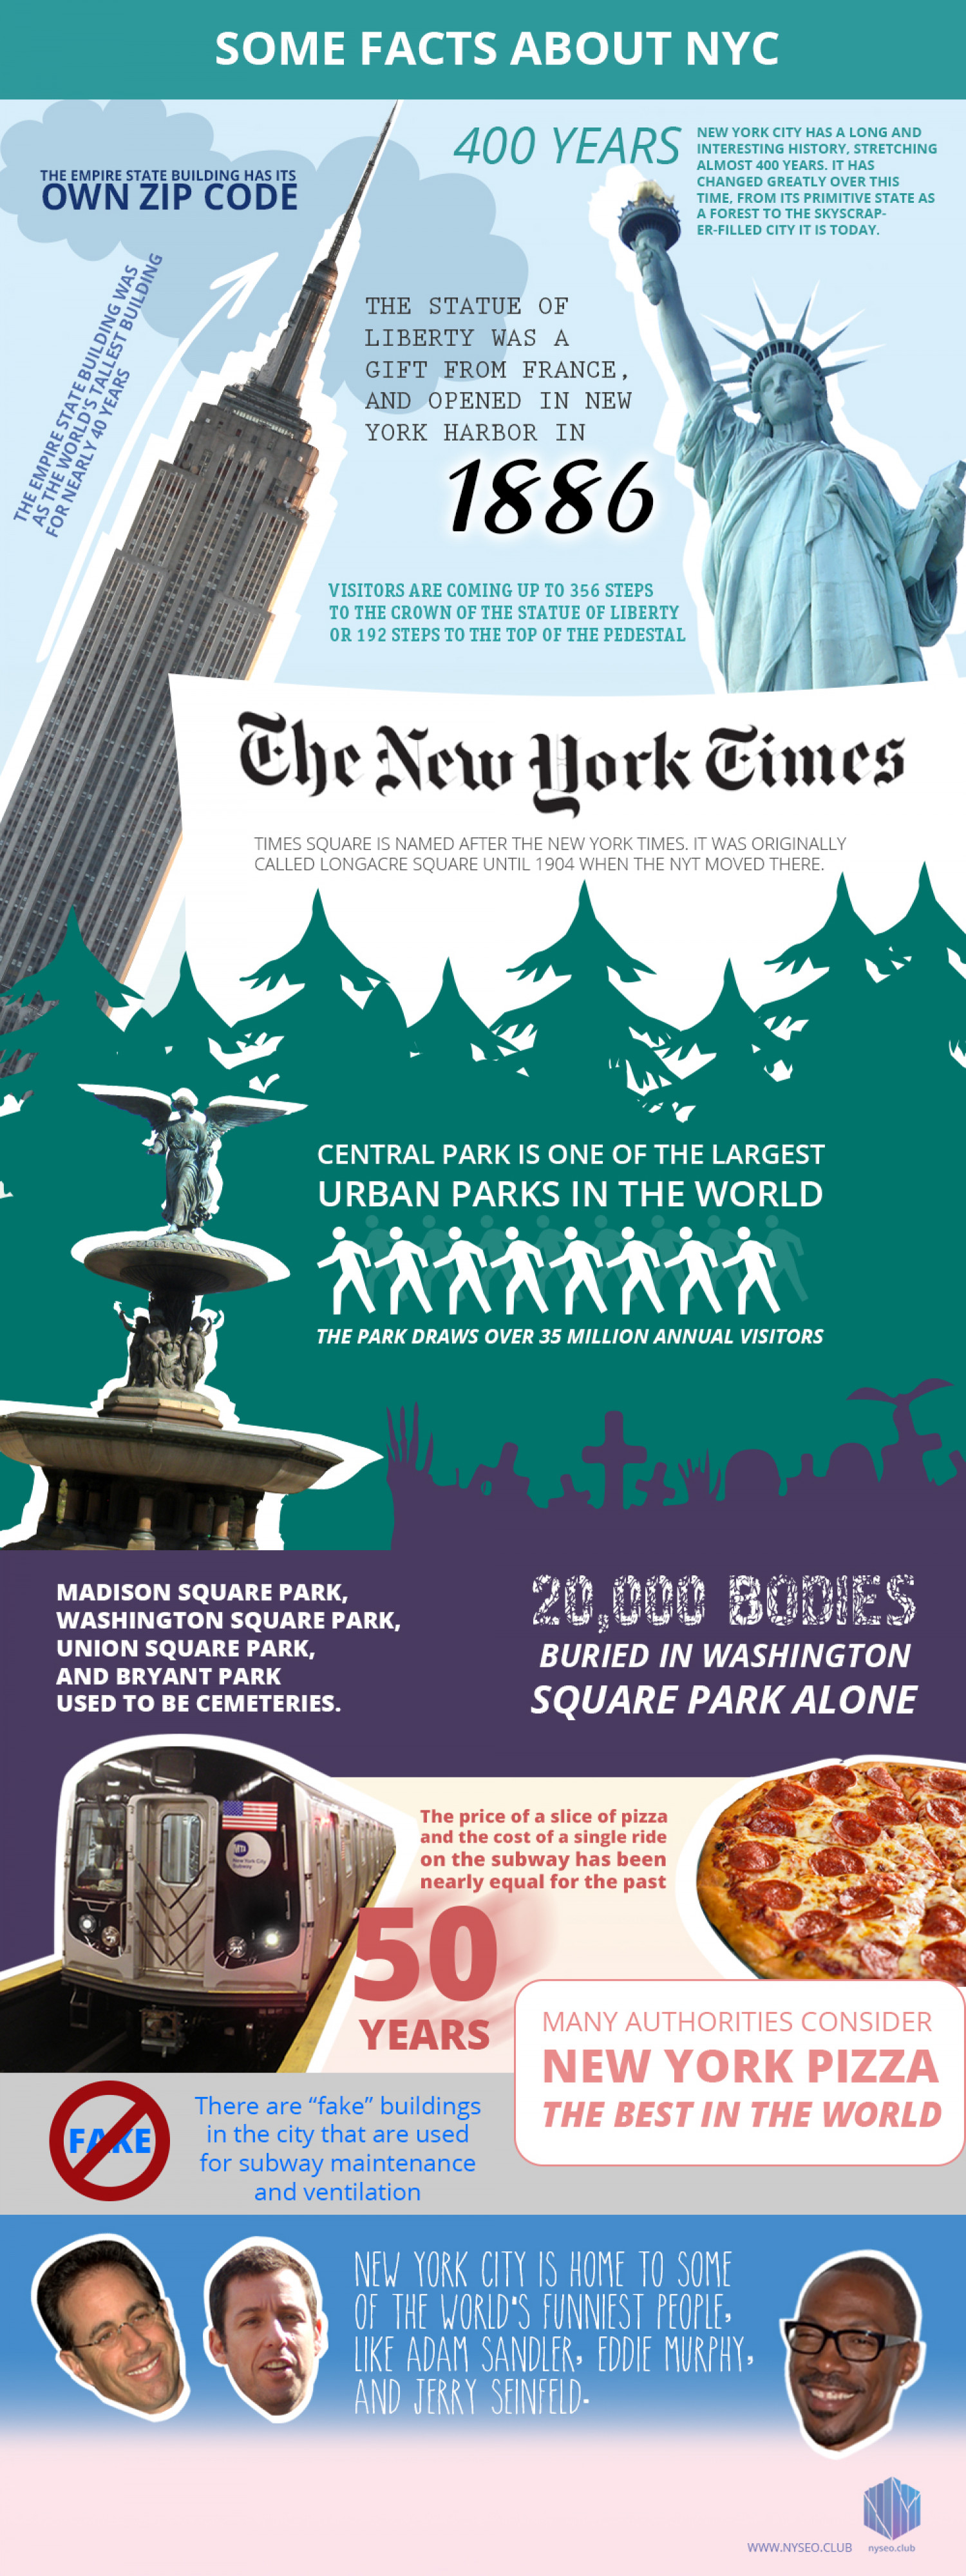 Some Interesting Facts About New York City Infographic